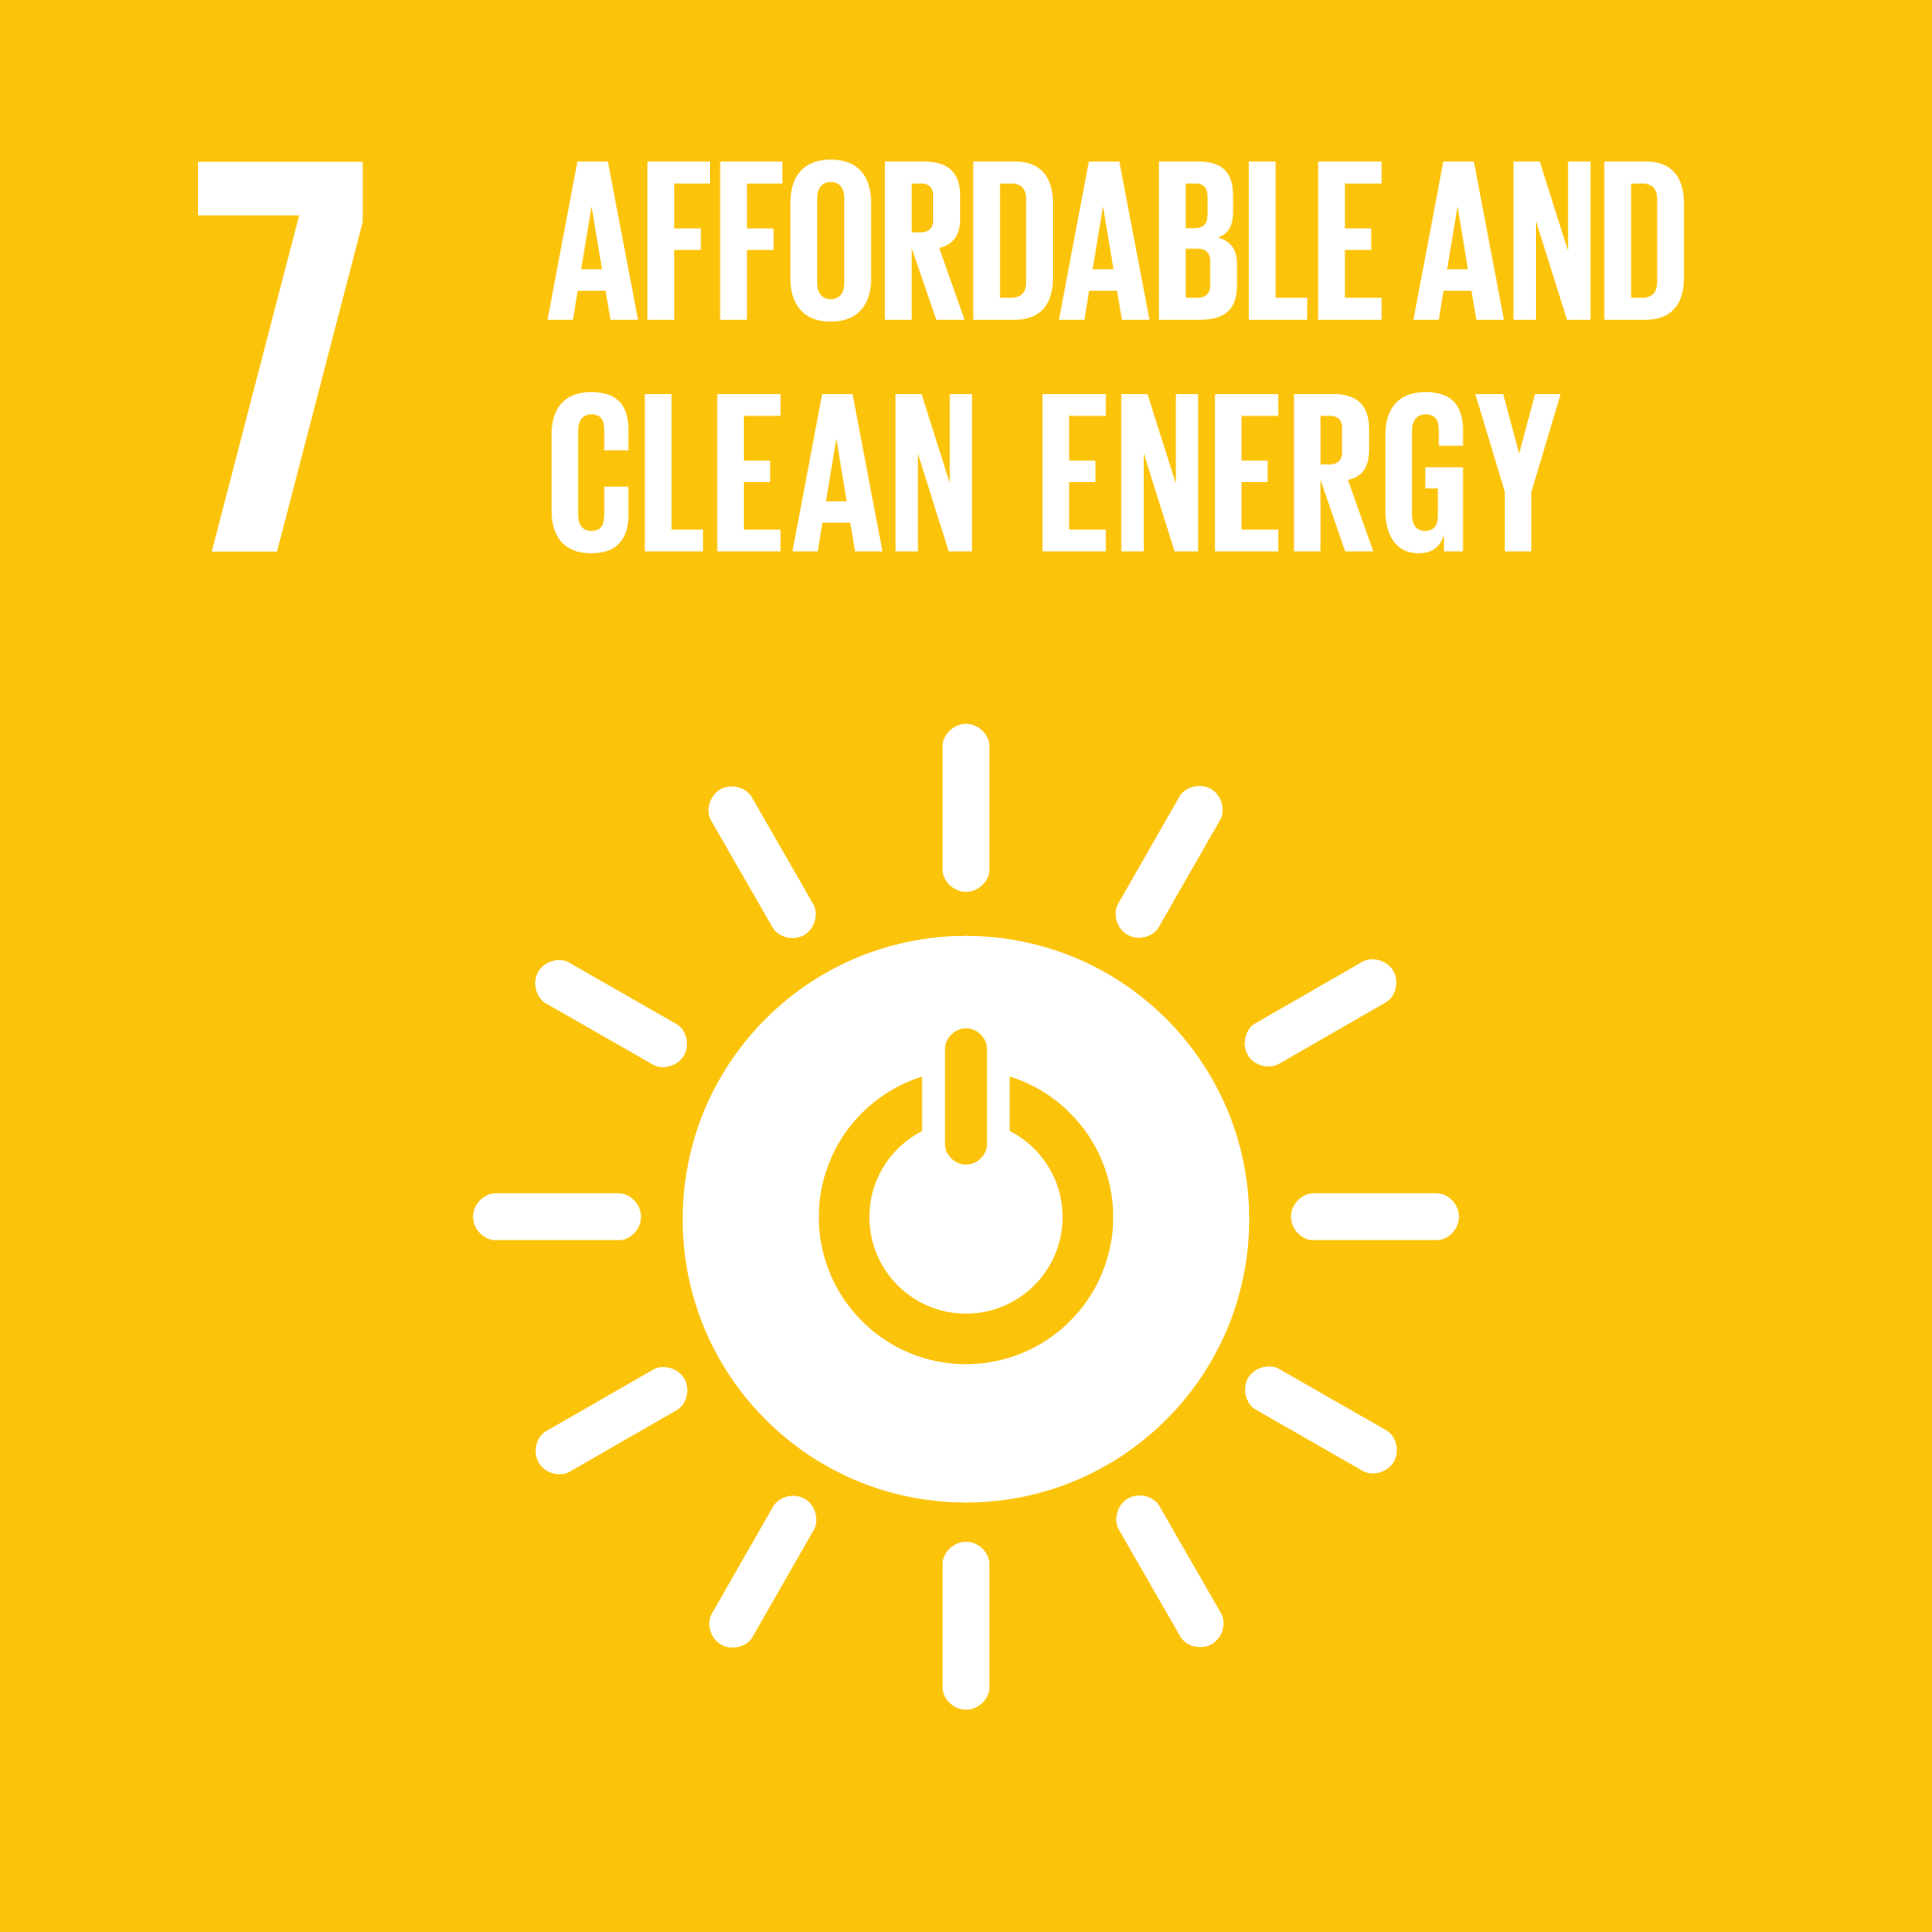 SDG Afoordable and clean energy